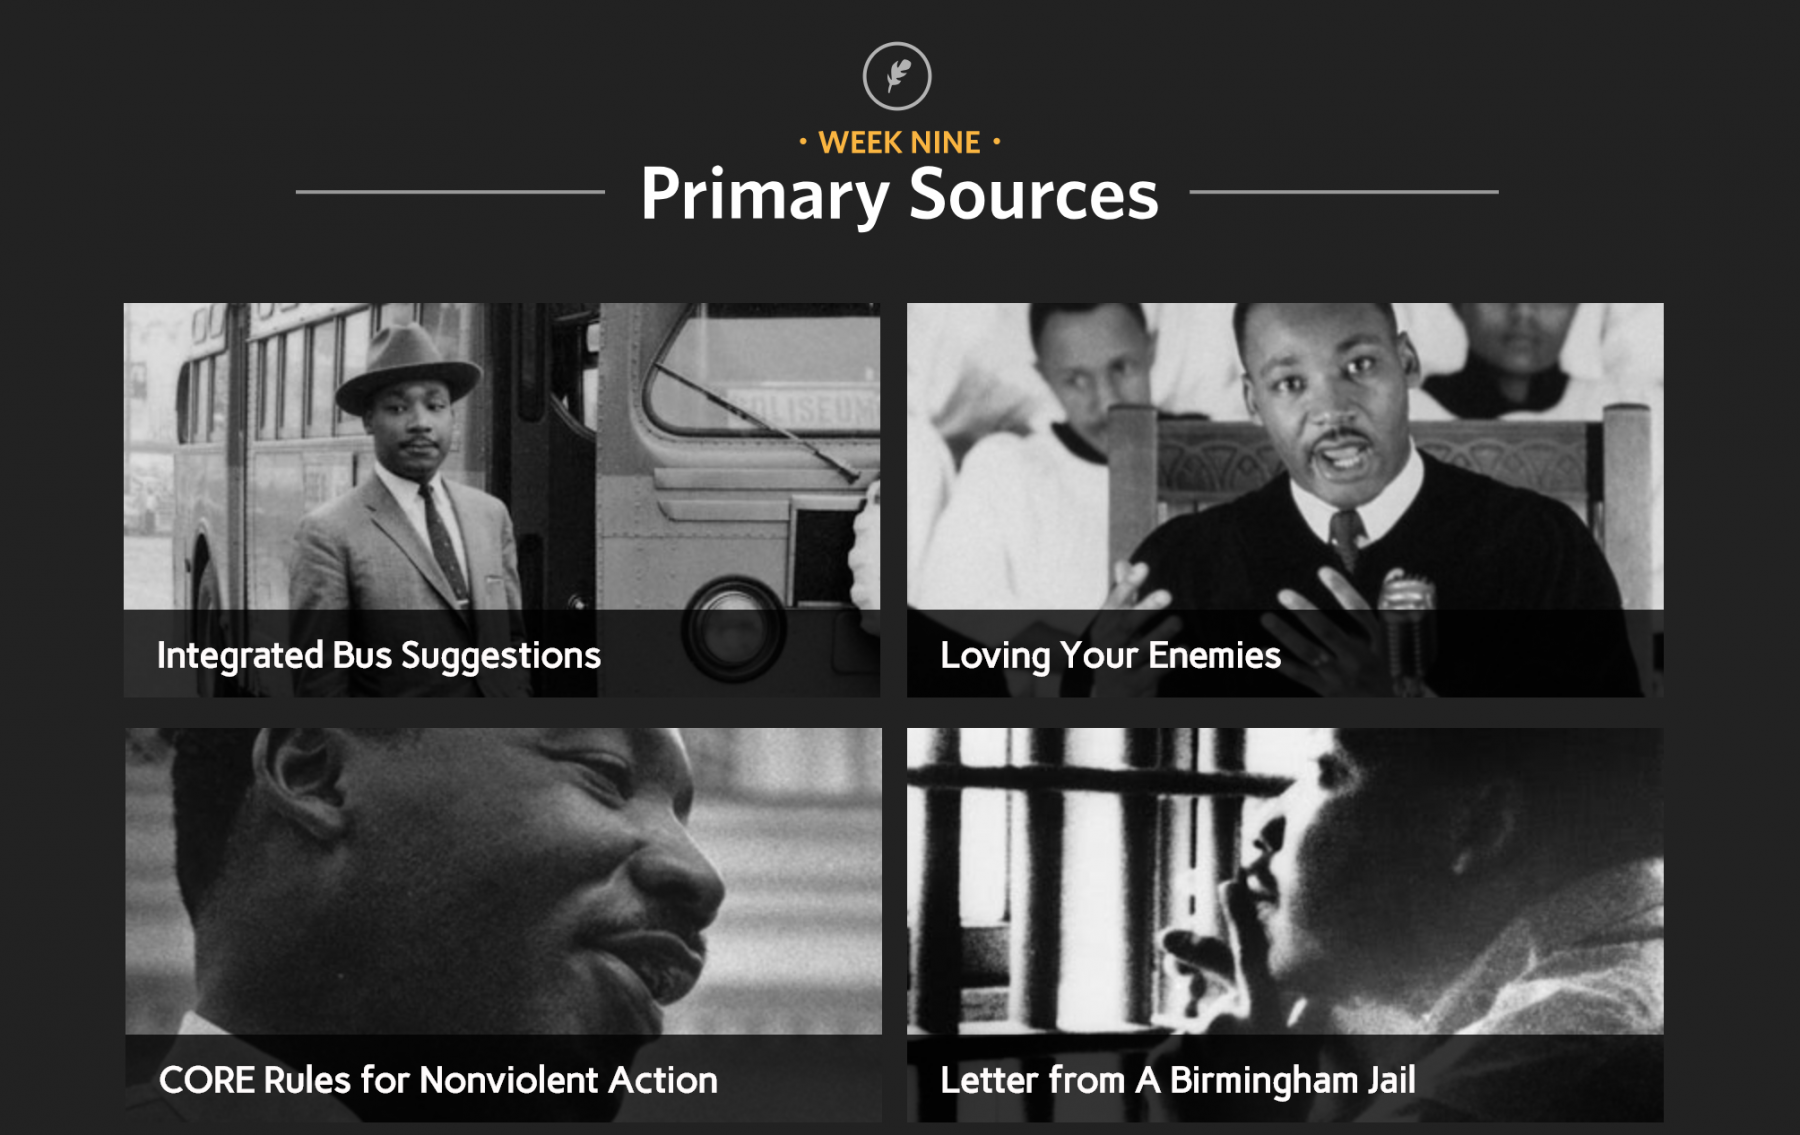 screenshot from interactive piece: 4 images and subtitles: week 9 Primary Sources; integrated bus suggestions; loving your enemies; CORE rules for nonviolent Action; Letter from a Birmingham Jail